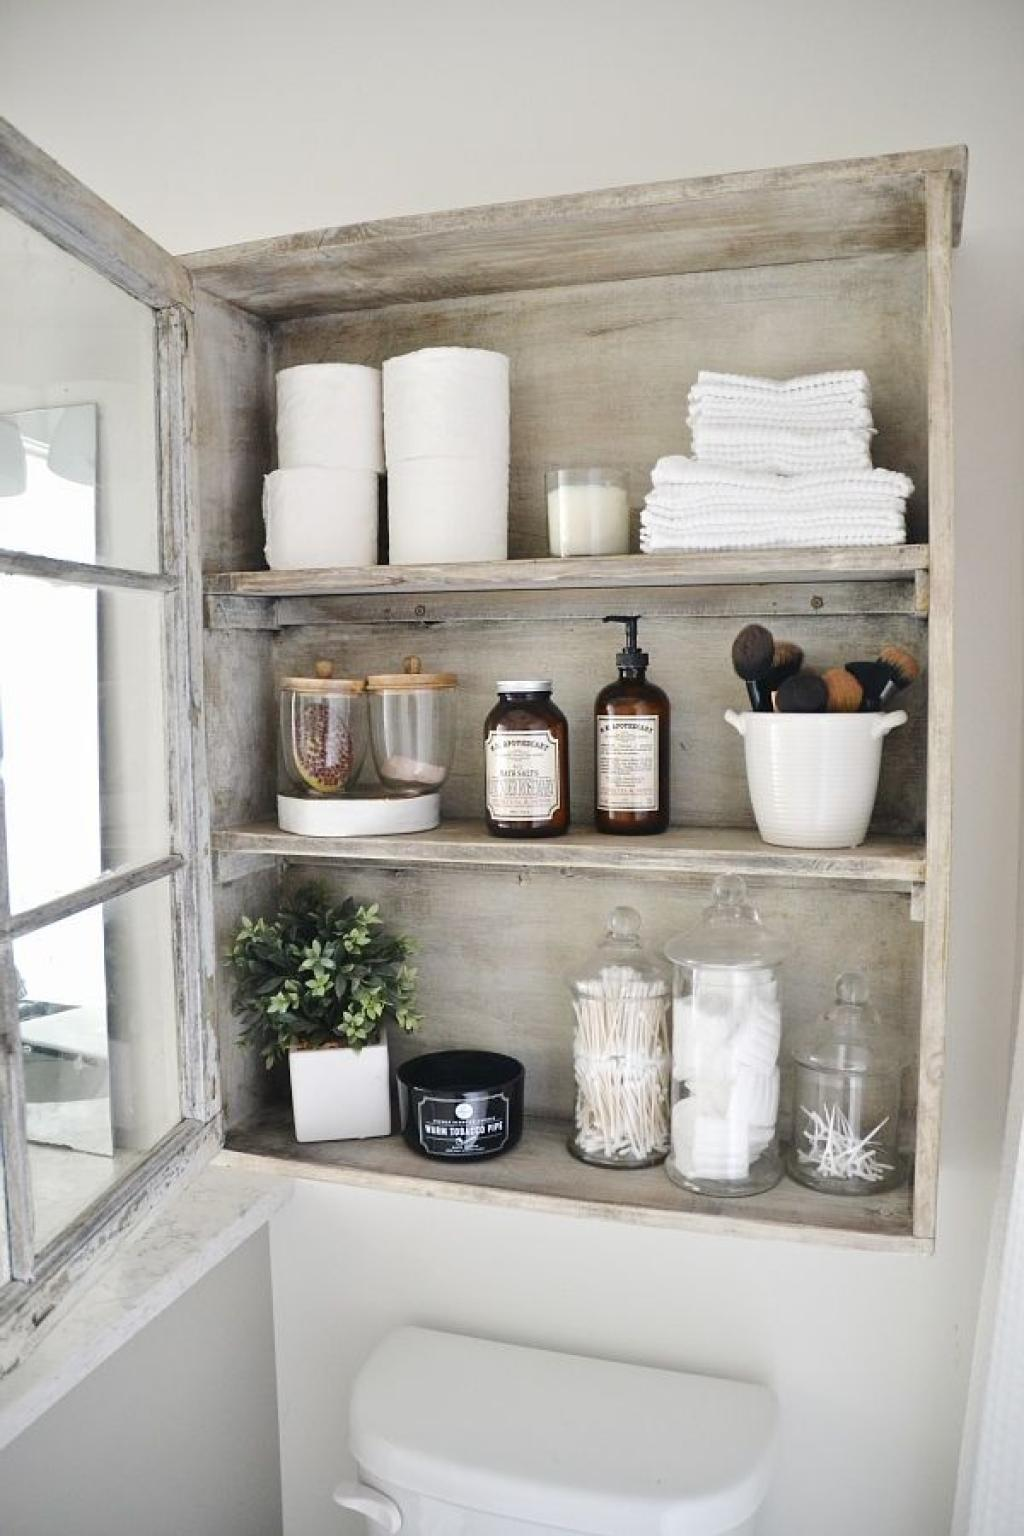 Bathroom Storage hen how to Home Decorating Ideas